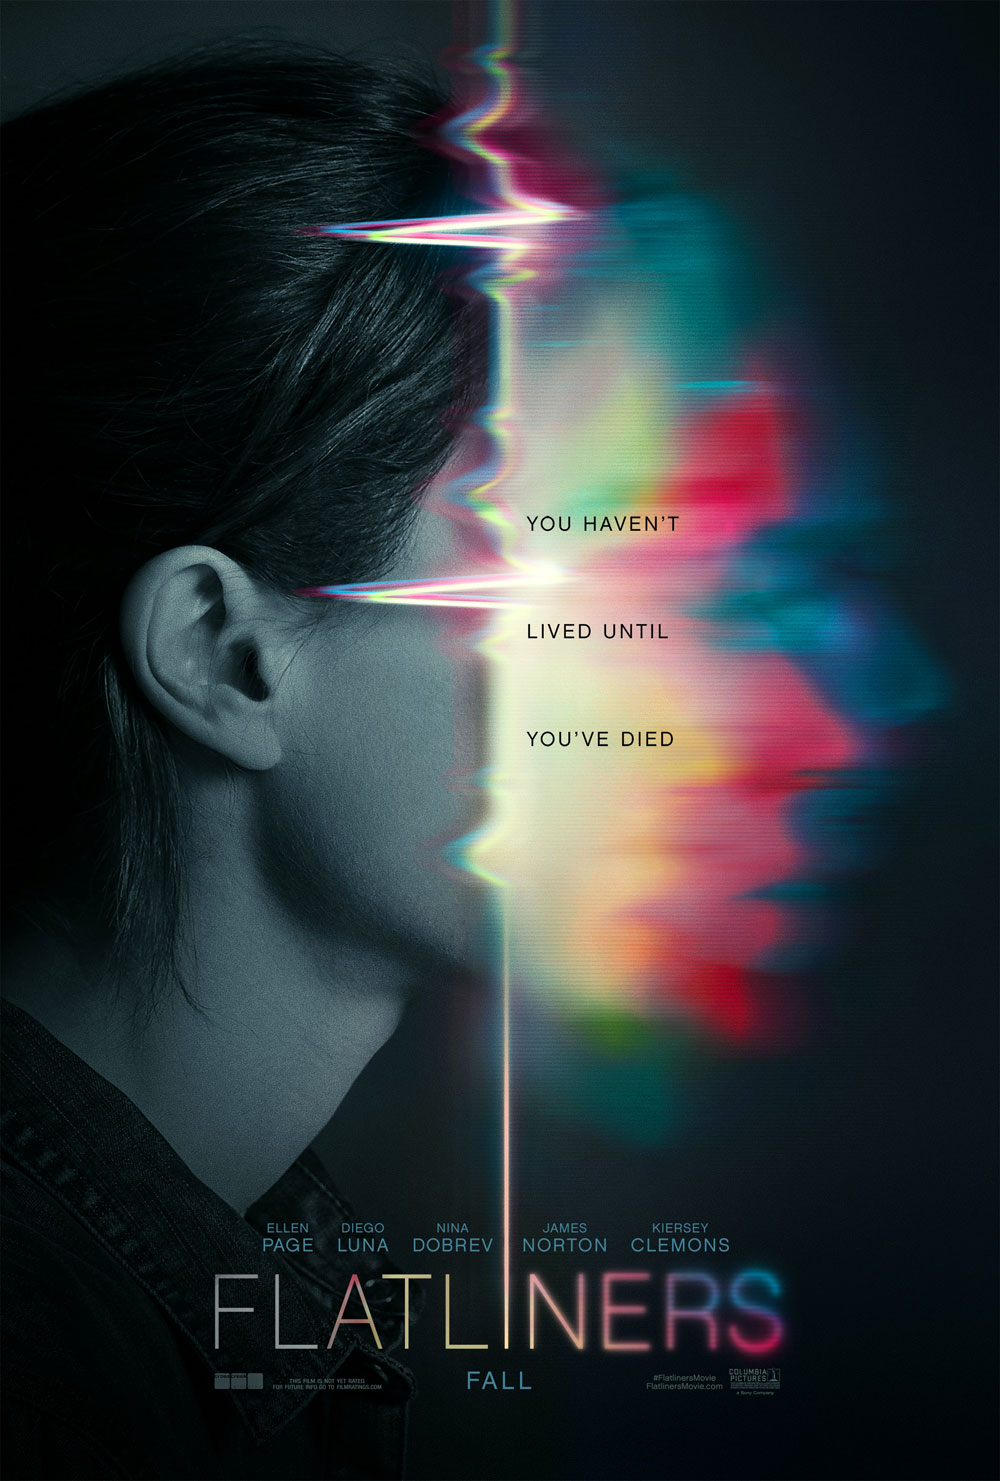 flatliners poster - Flatliners - A Pair of Posters to Keep Your Heart Beating